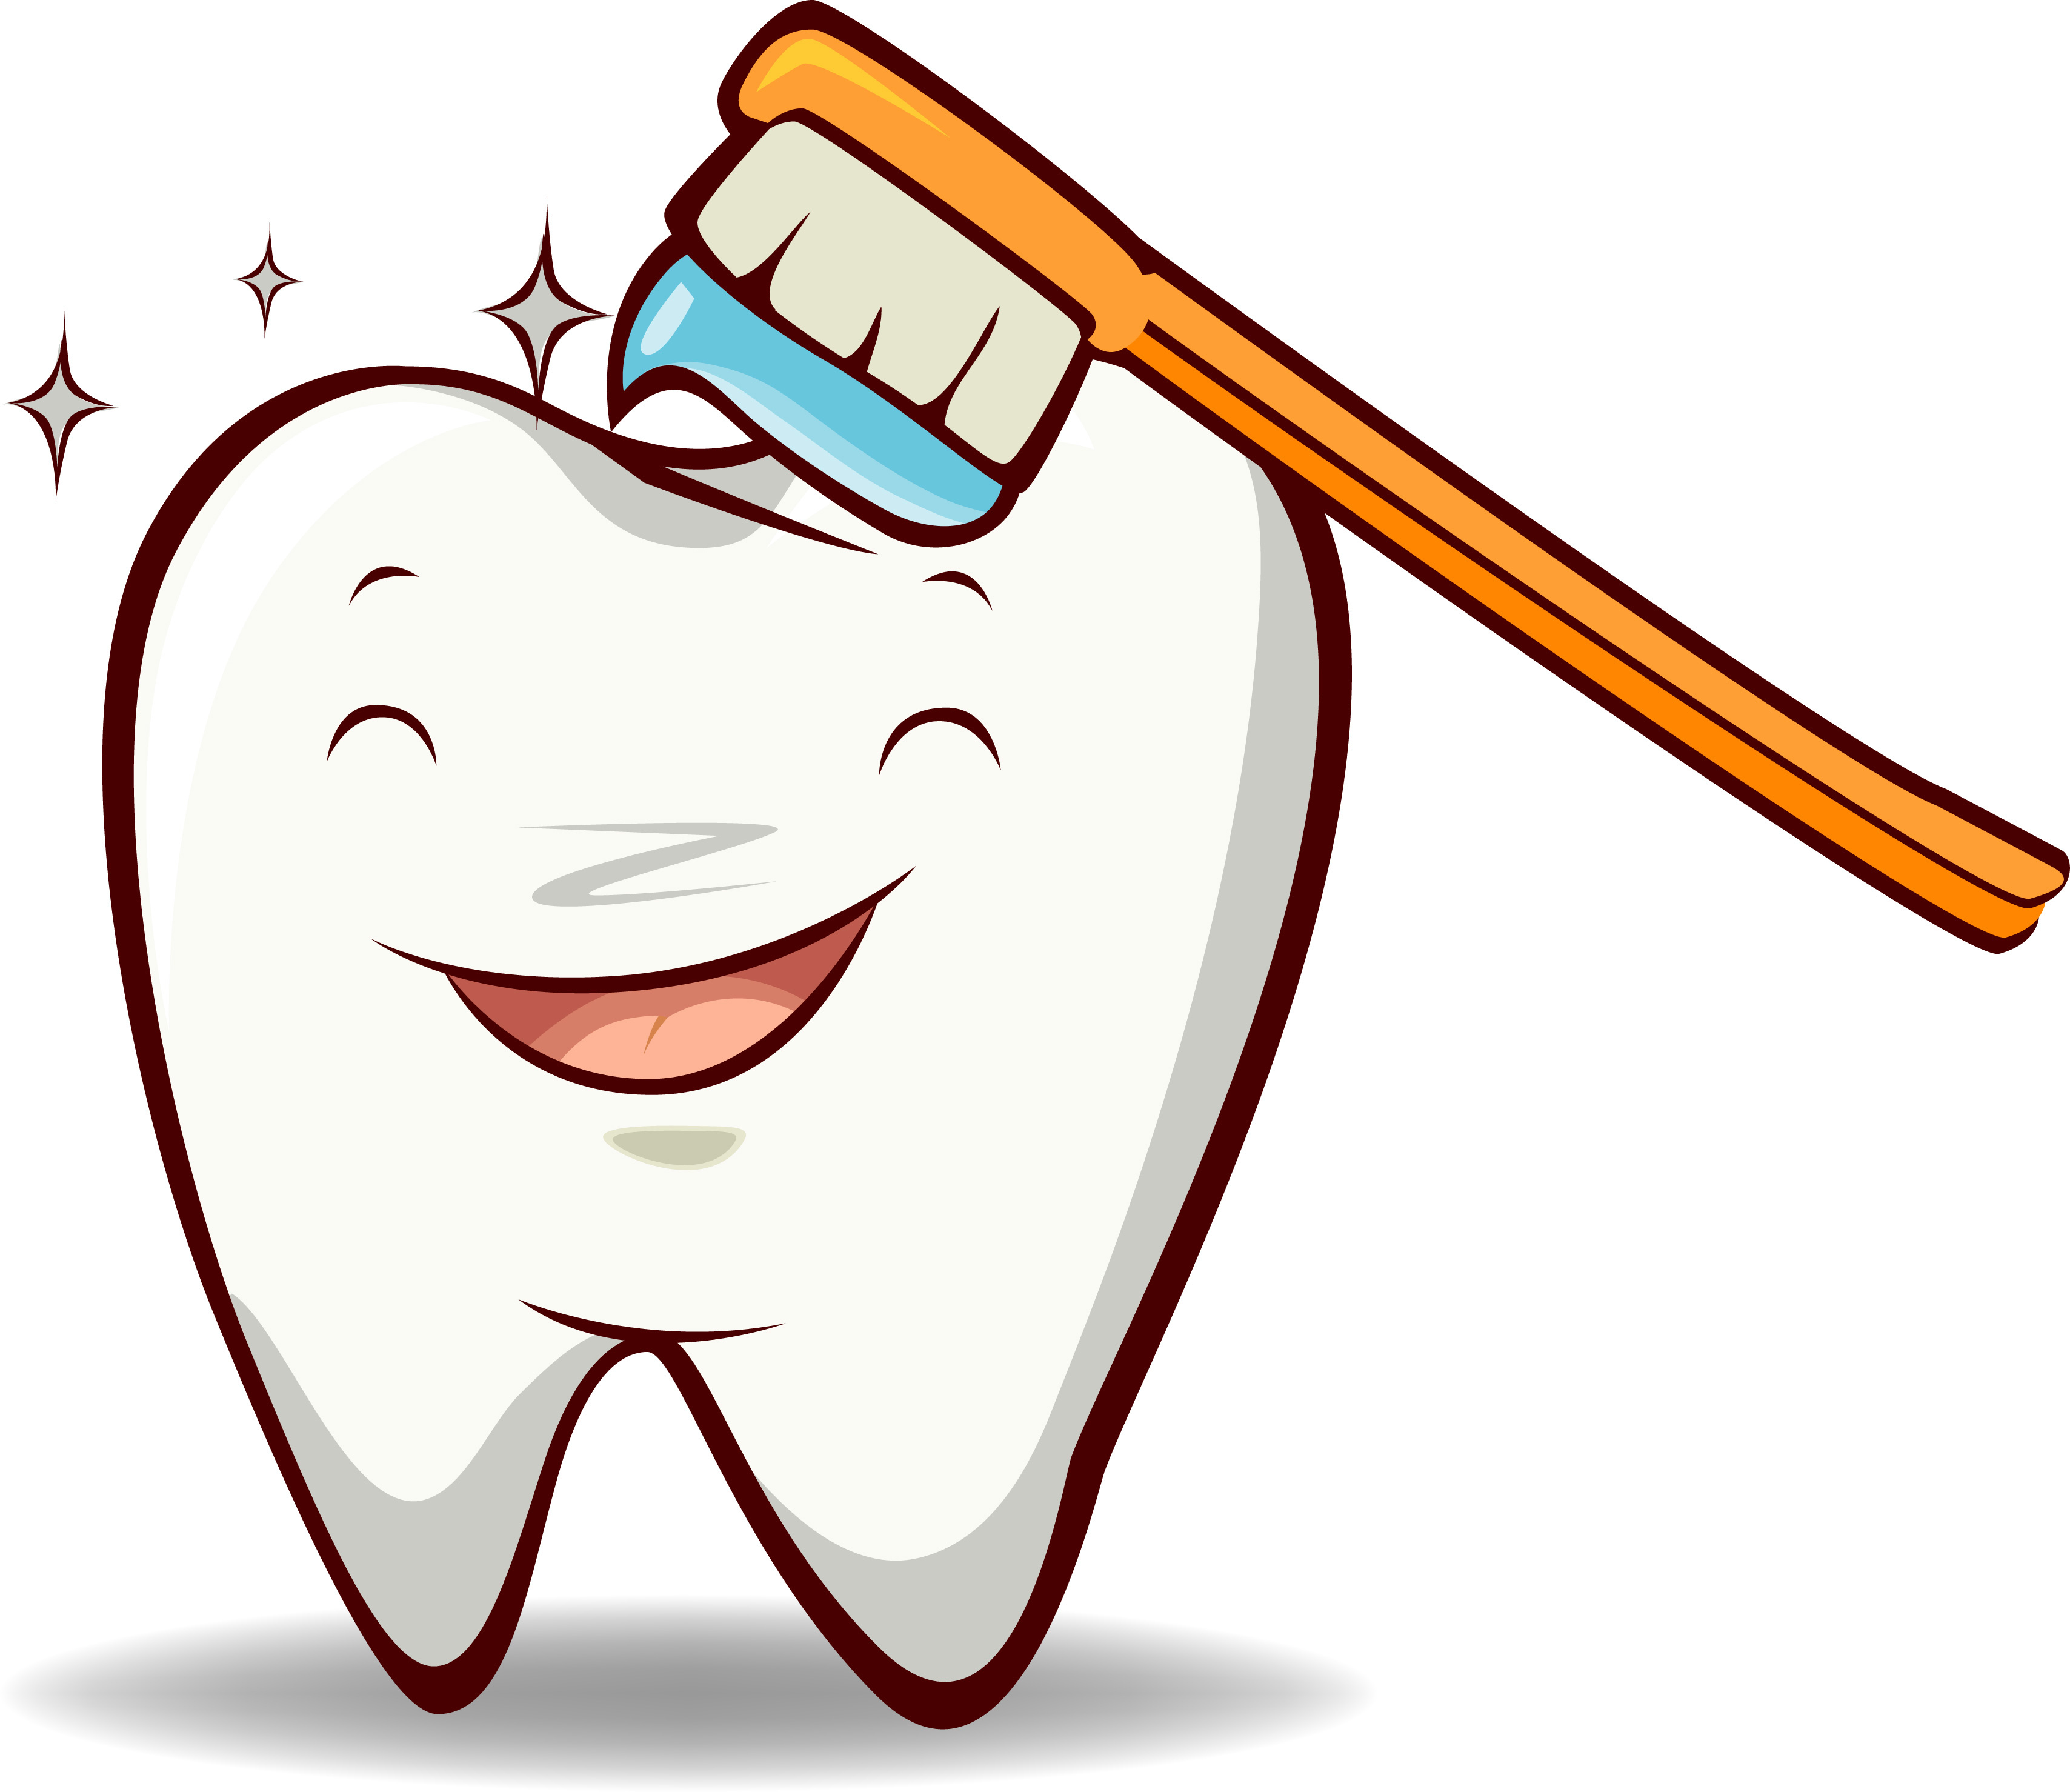 Tooth caricature clipart